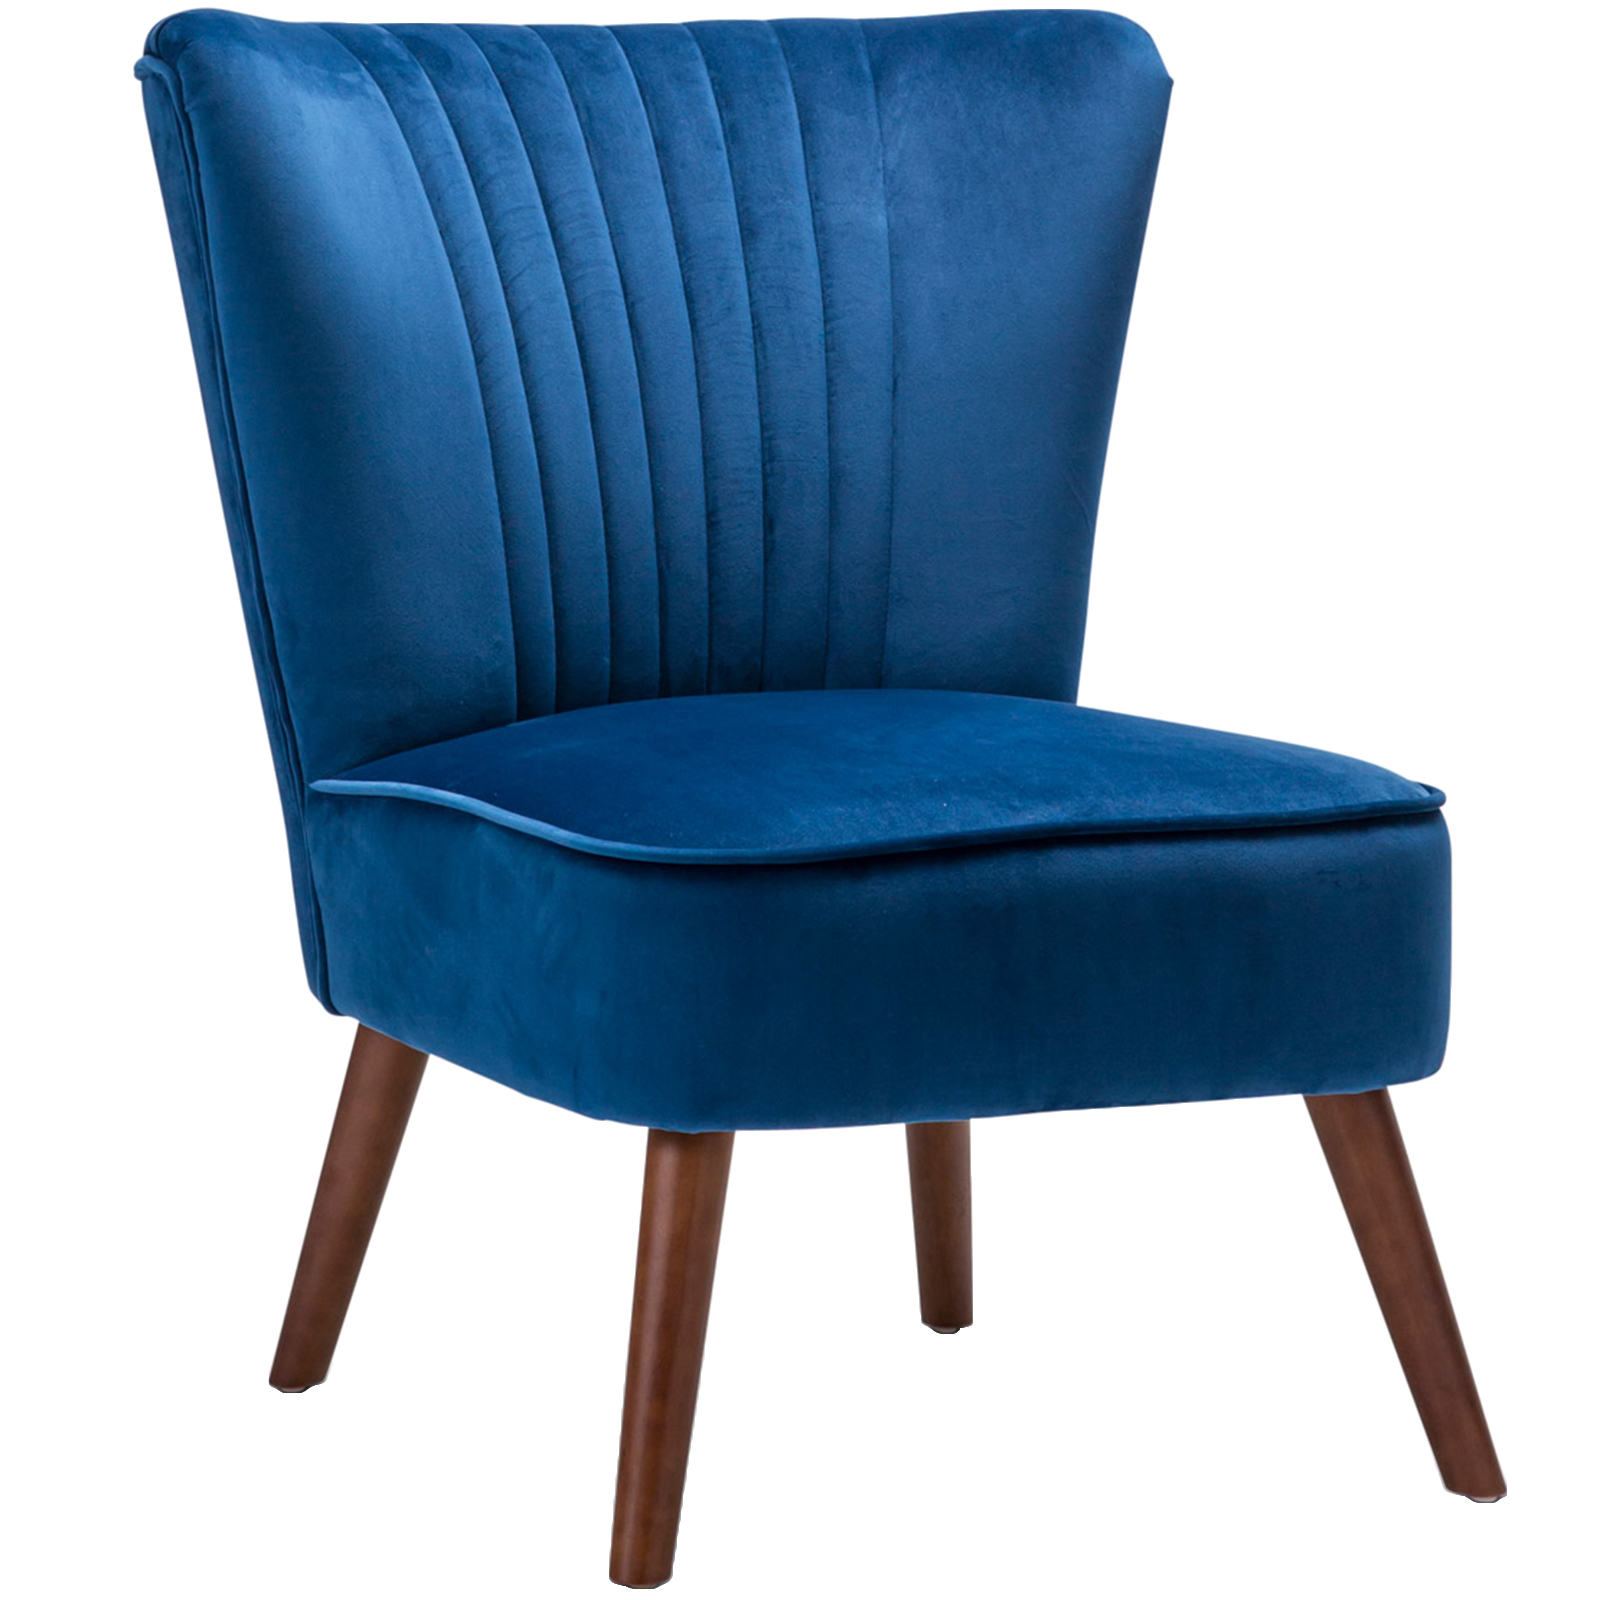 New ayana velvet slipper accent chair continental designs for Latest chairs for living room